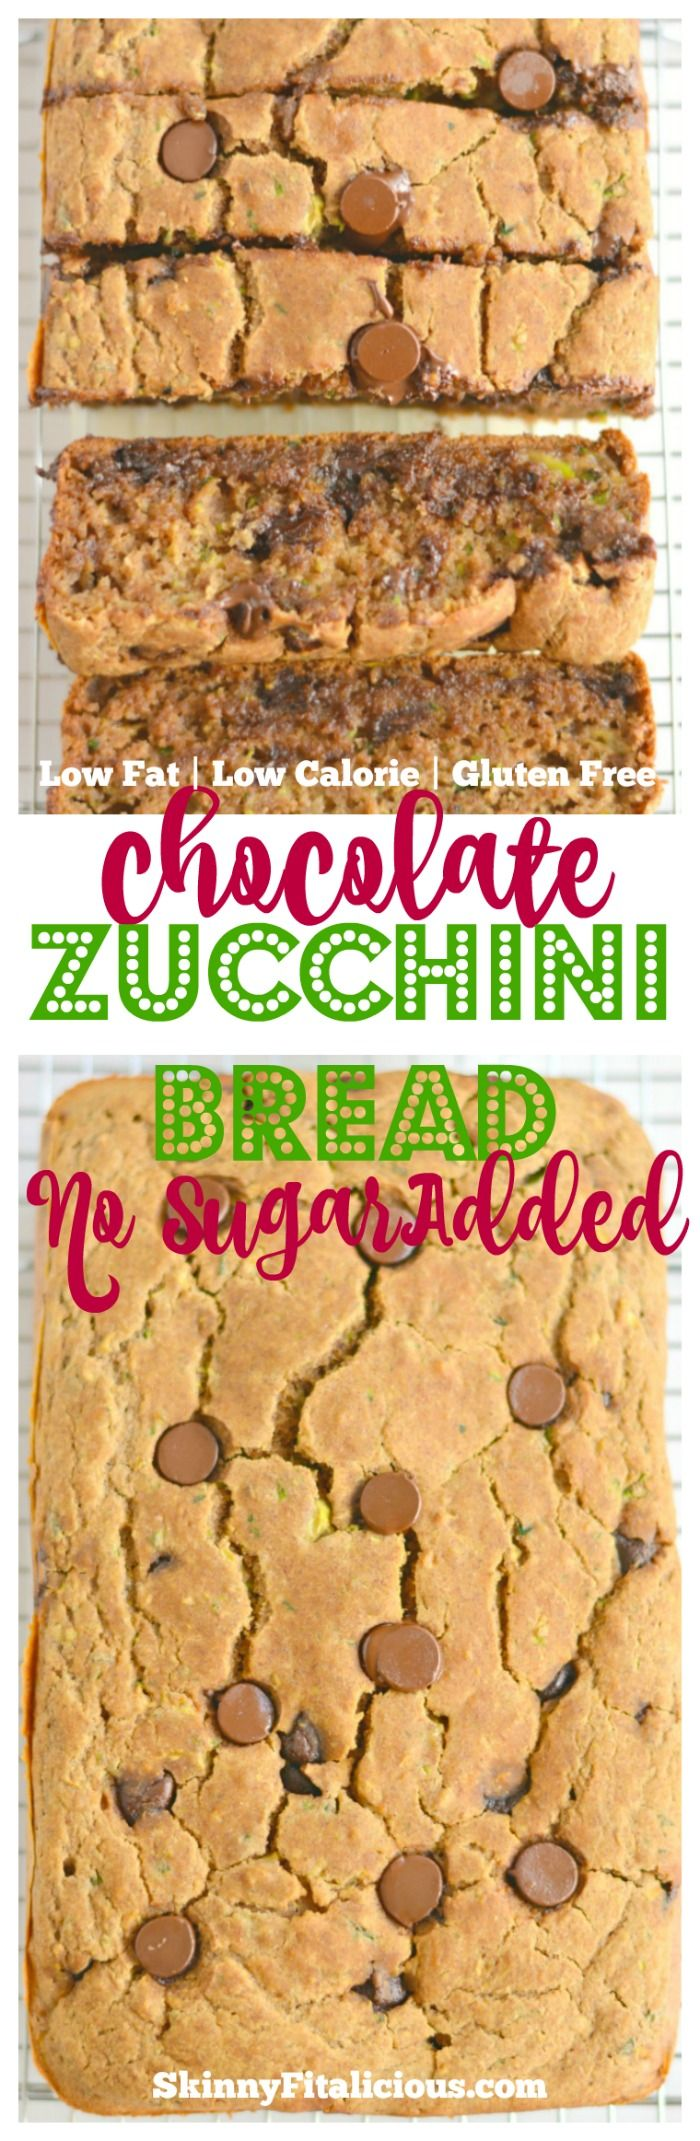 Low Fat Chocolate Zucchini Bread made with no added sugar or oil. A lighter and healthier zucchini bread that's most, creamy, incredibly addicting and guaranteed delicious! Use pumpkin instead of applesauce and need oat flour.